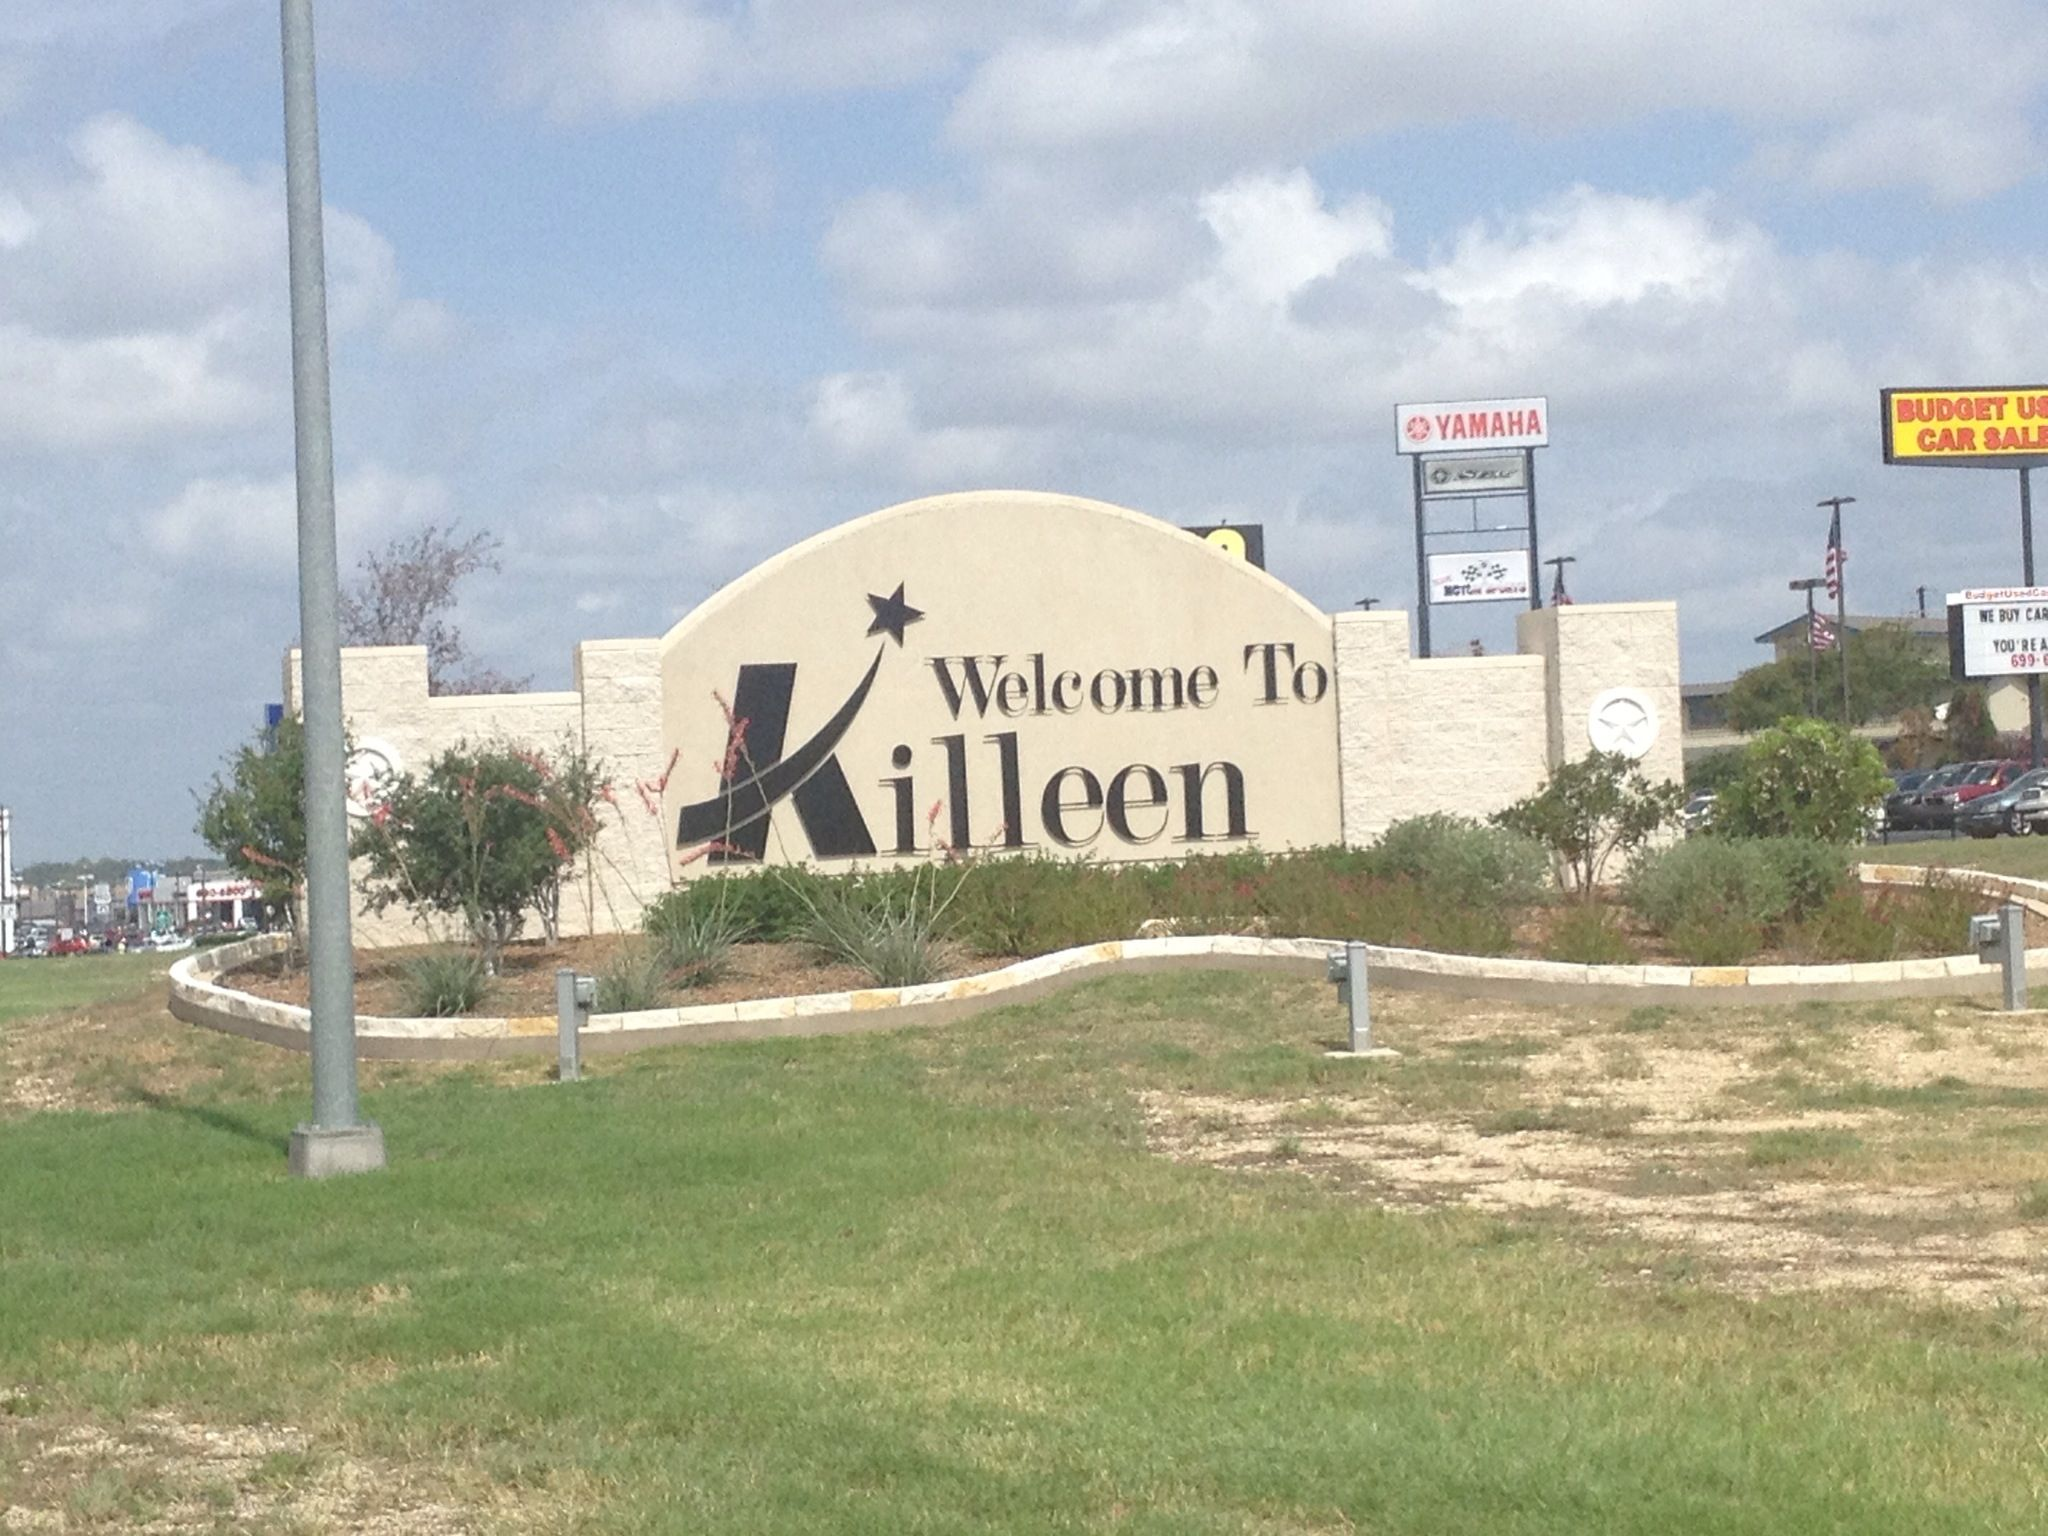 Killeen TX is actually a Great Place  It's gets a bad rap  I